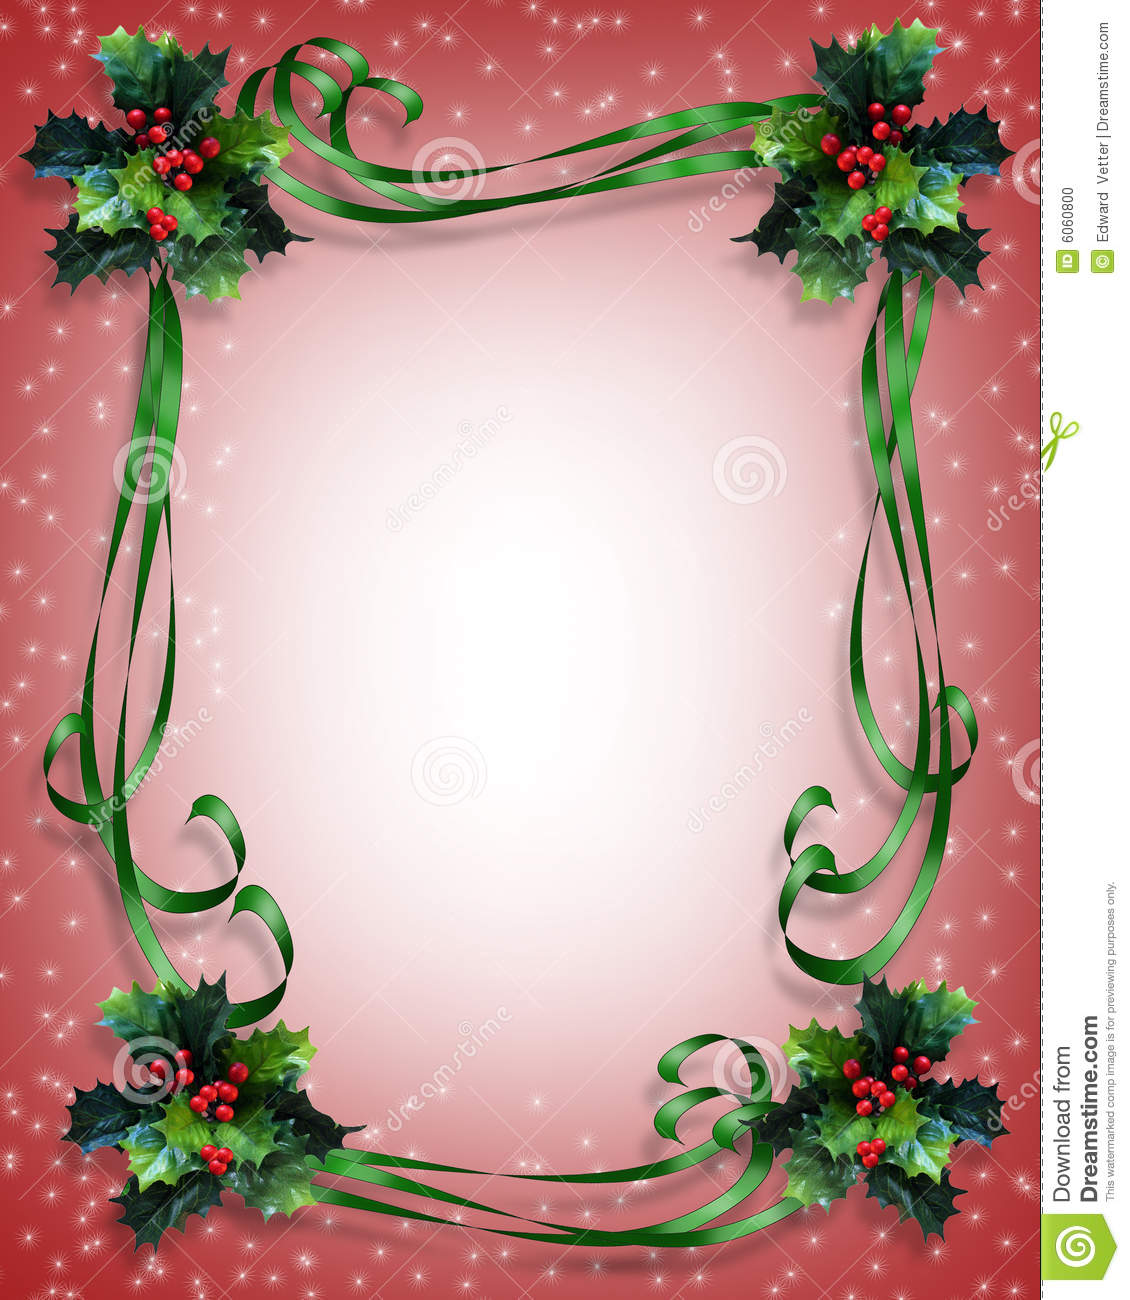 Christmas Background Holly Border Stock Photo - Image: 6060800